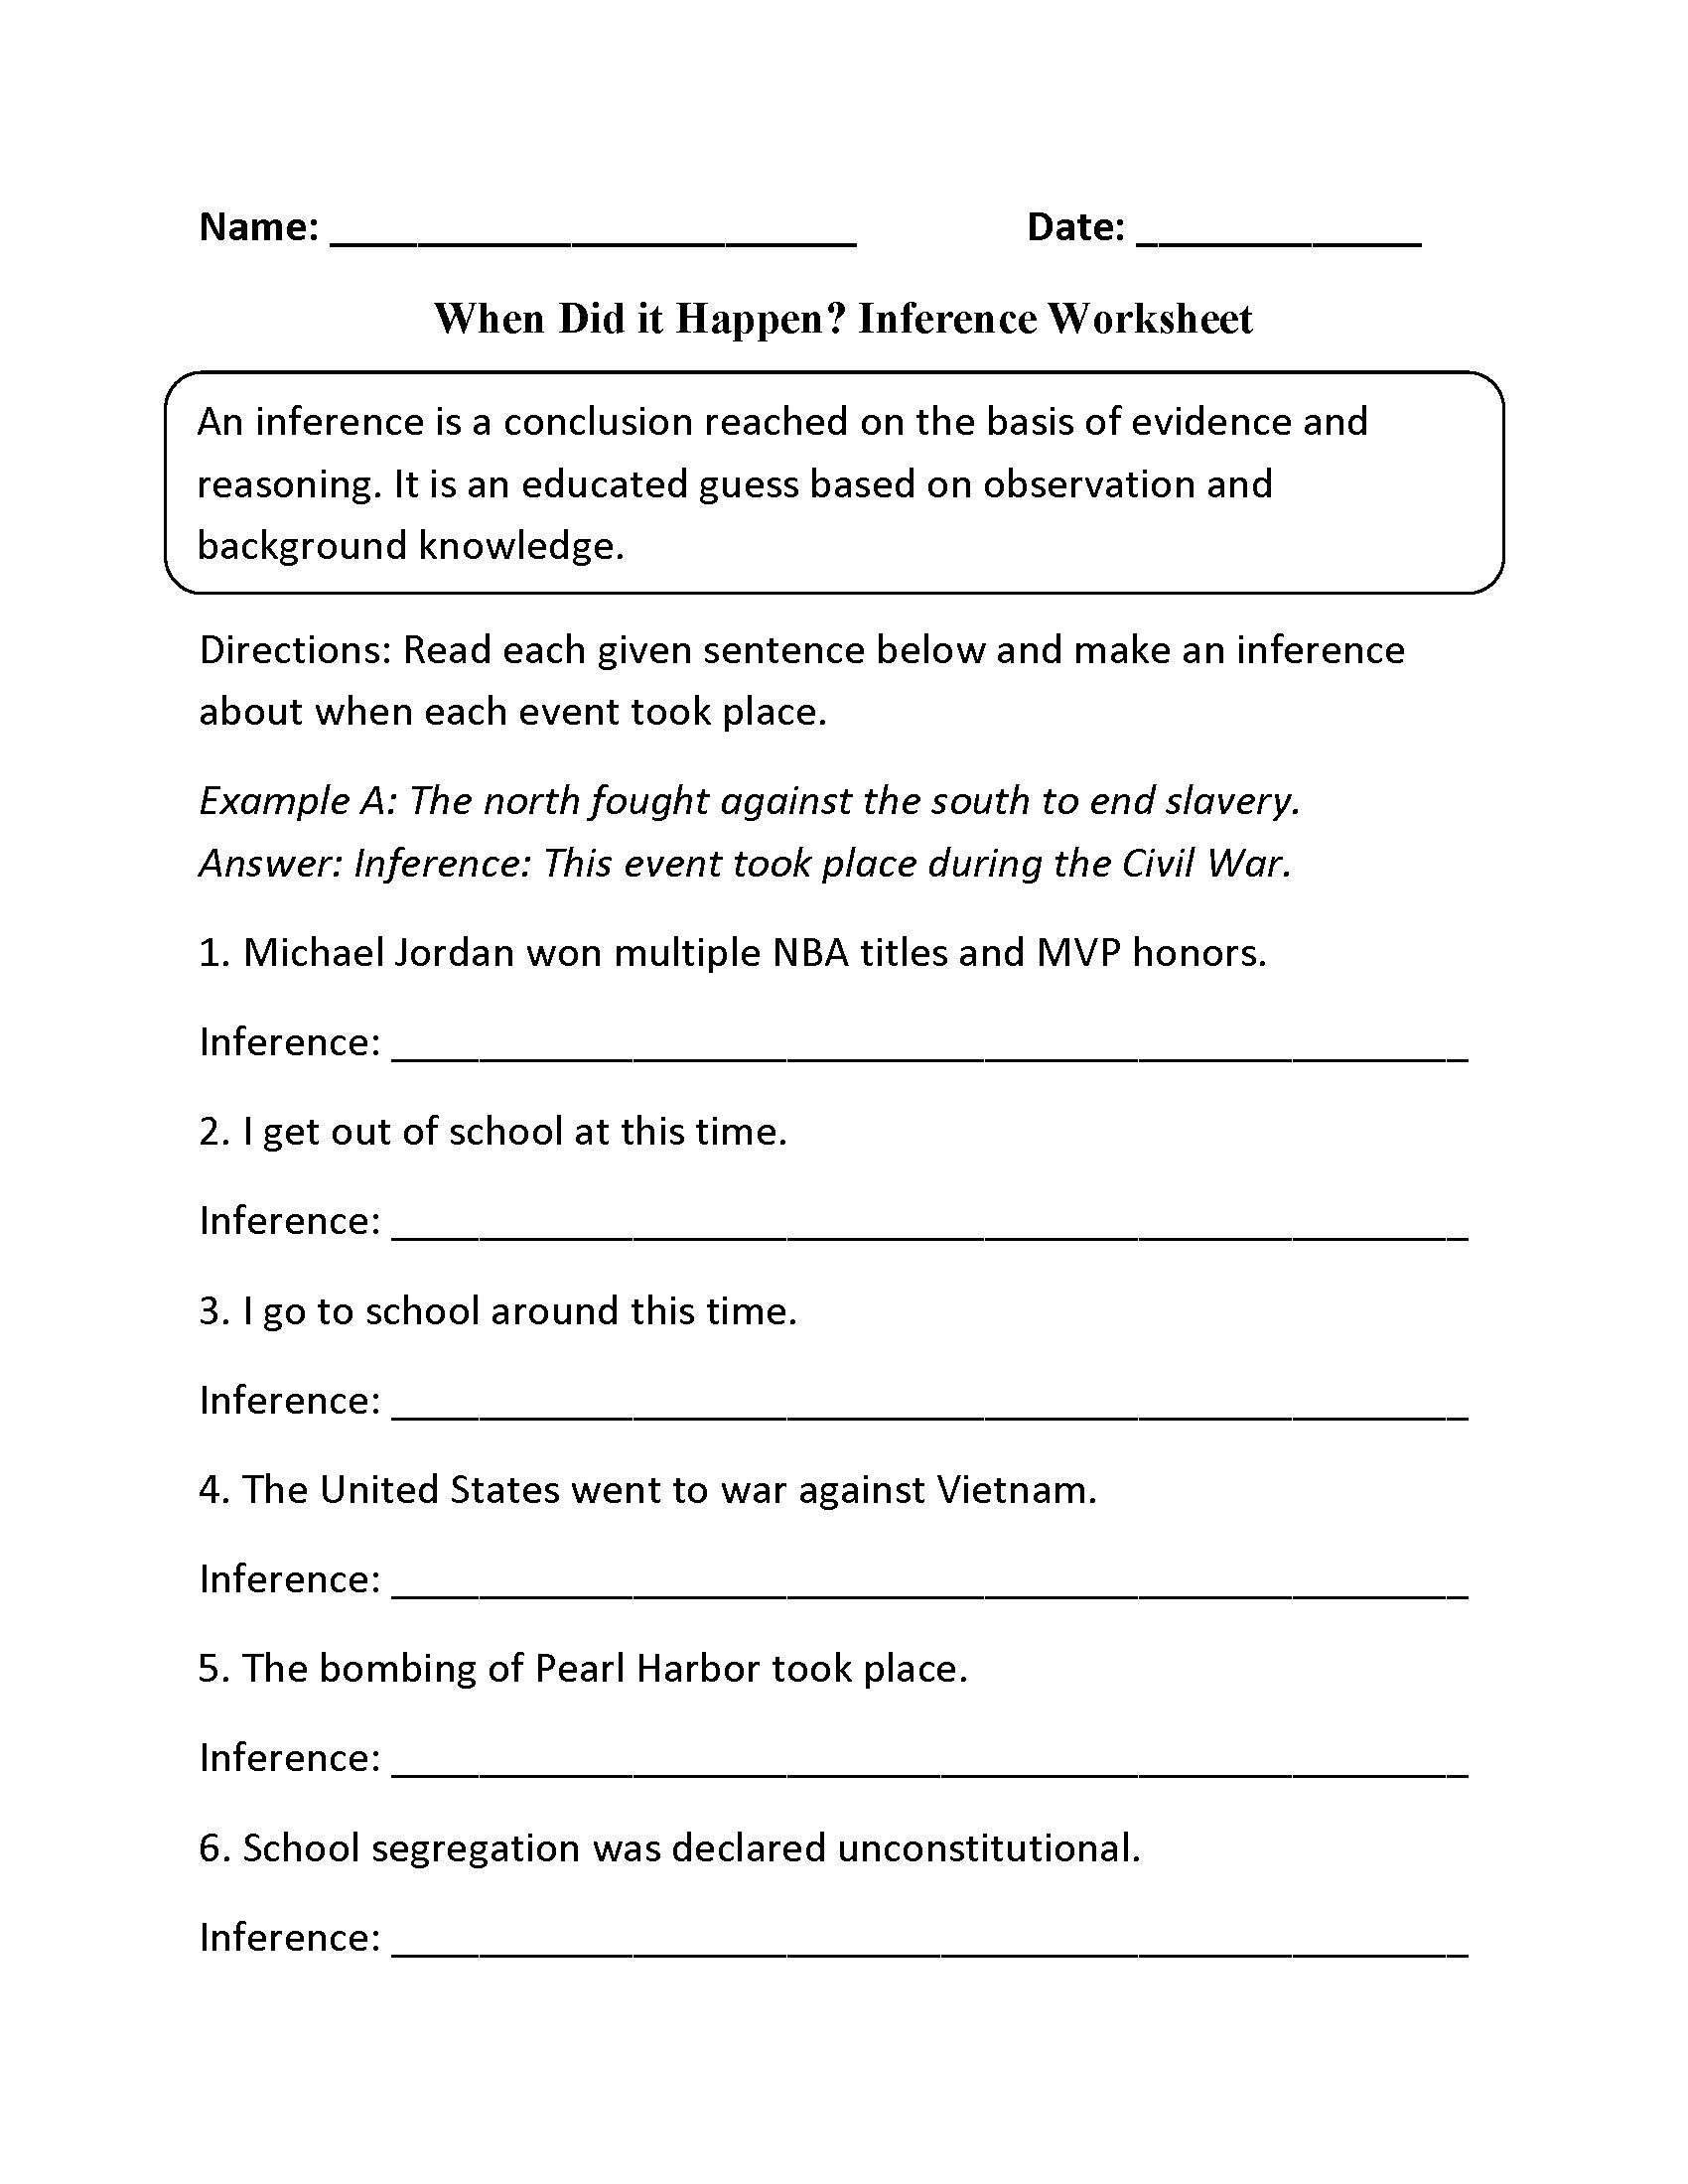 Inference Worksheets for 4th Grade Making Inferences Worksheets 5th Grade